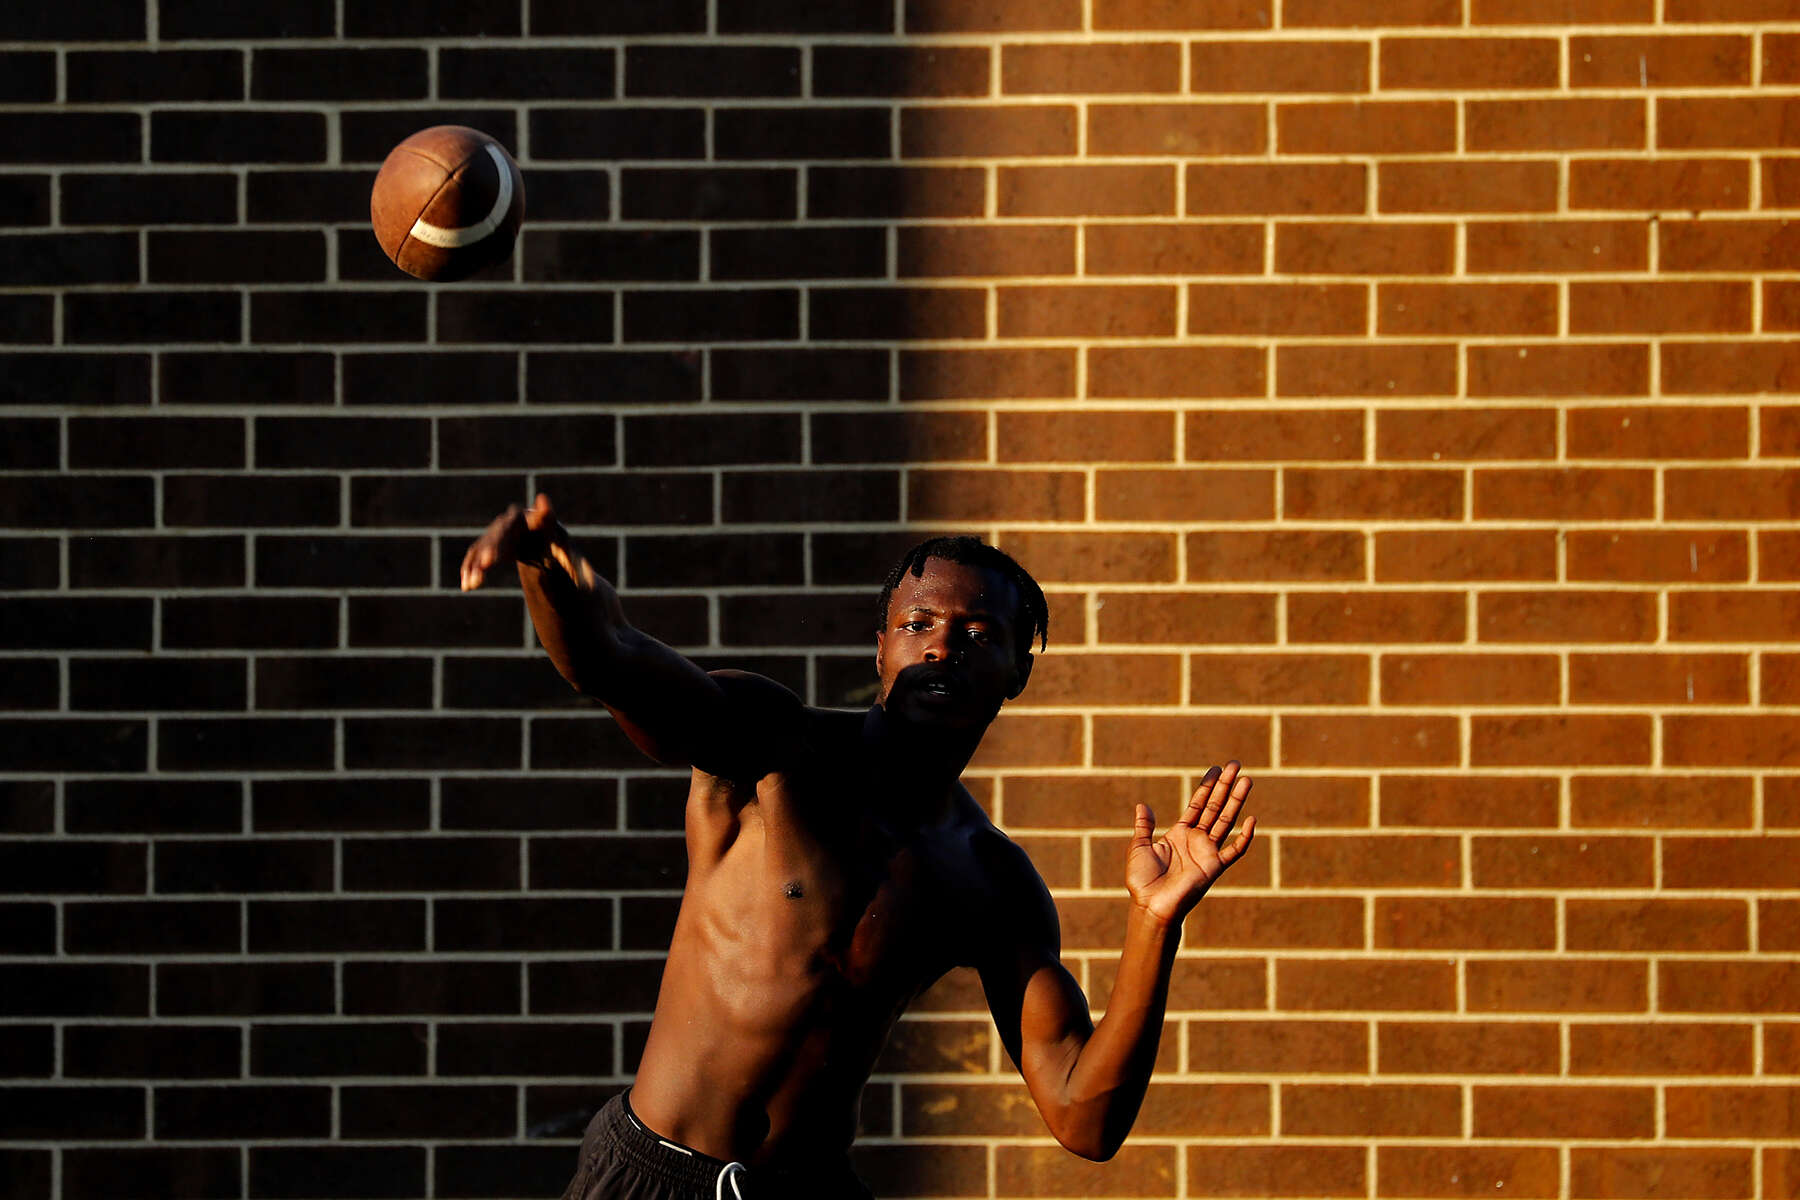 Bruton's Mikal Whack throws the ball during a water break of Thursday evening's football practice July 25, 2019. Bruton, a school of 600, always struggled with small football participation numbers and in a 2018 lost two of its best linemen to injury.  That left the Panthers with 15 players, half of them with no varsity experience. The team cut their schedule in half and were outscored 262-14 during their winless season. In 2019 the team will return to playing a full 10-game season.